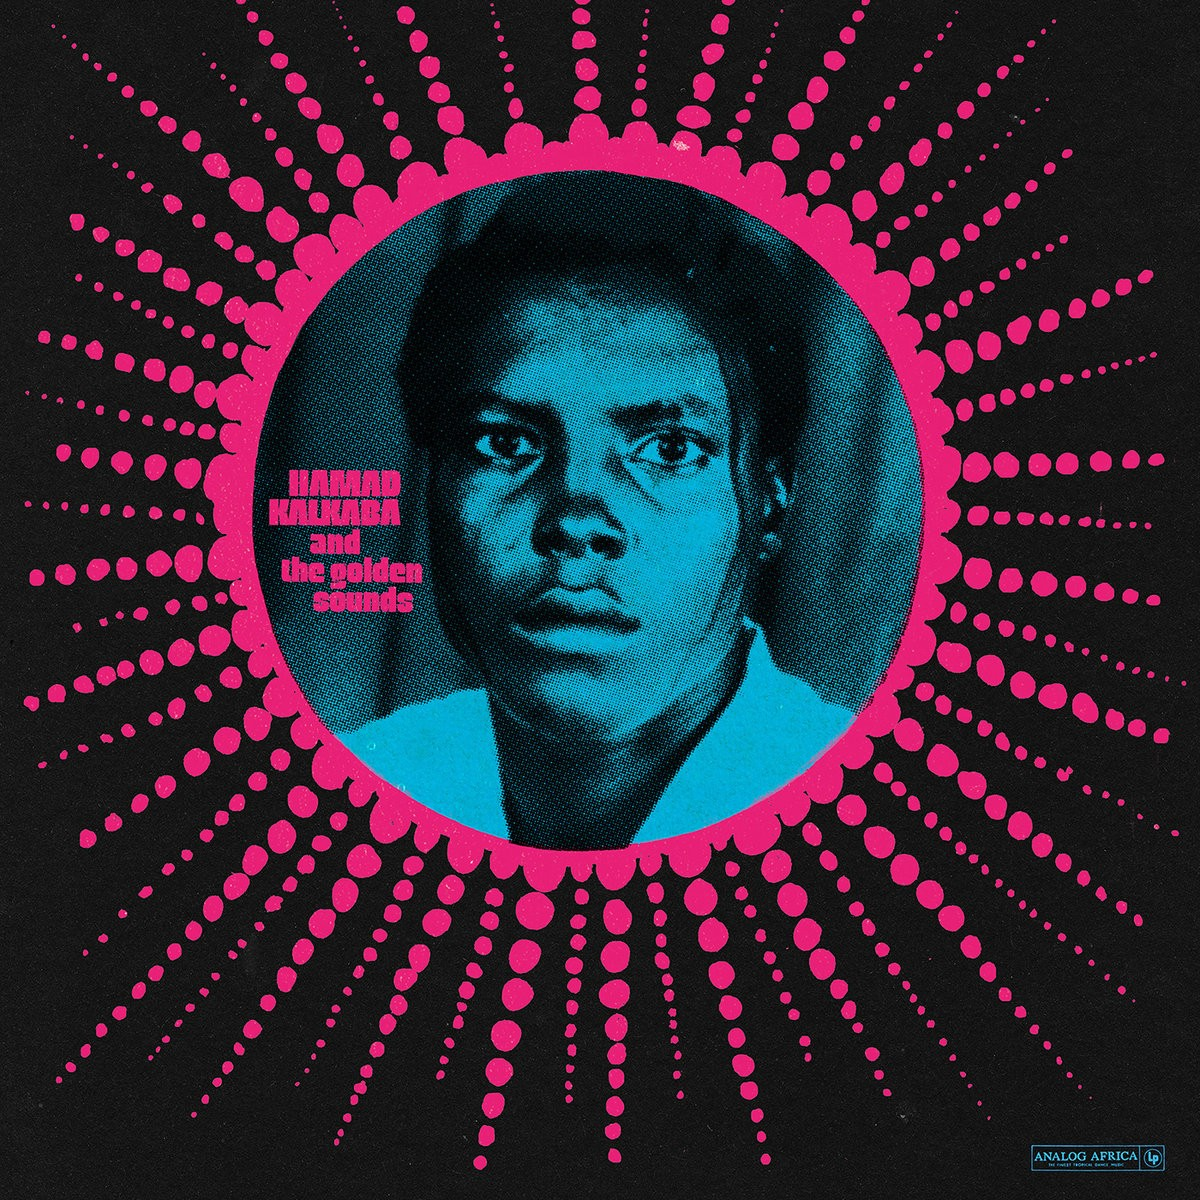 Hamad Kalkaba : Hamad Kalkaba and The Golden Sounds 1974-1975 | LP / 33T  |  Afro / Funk / Latin